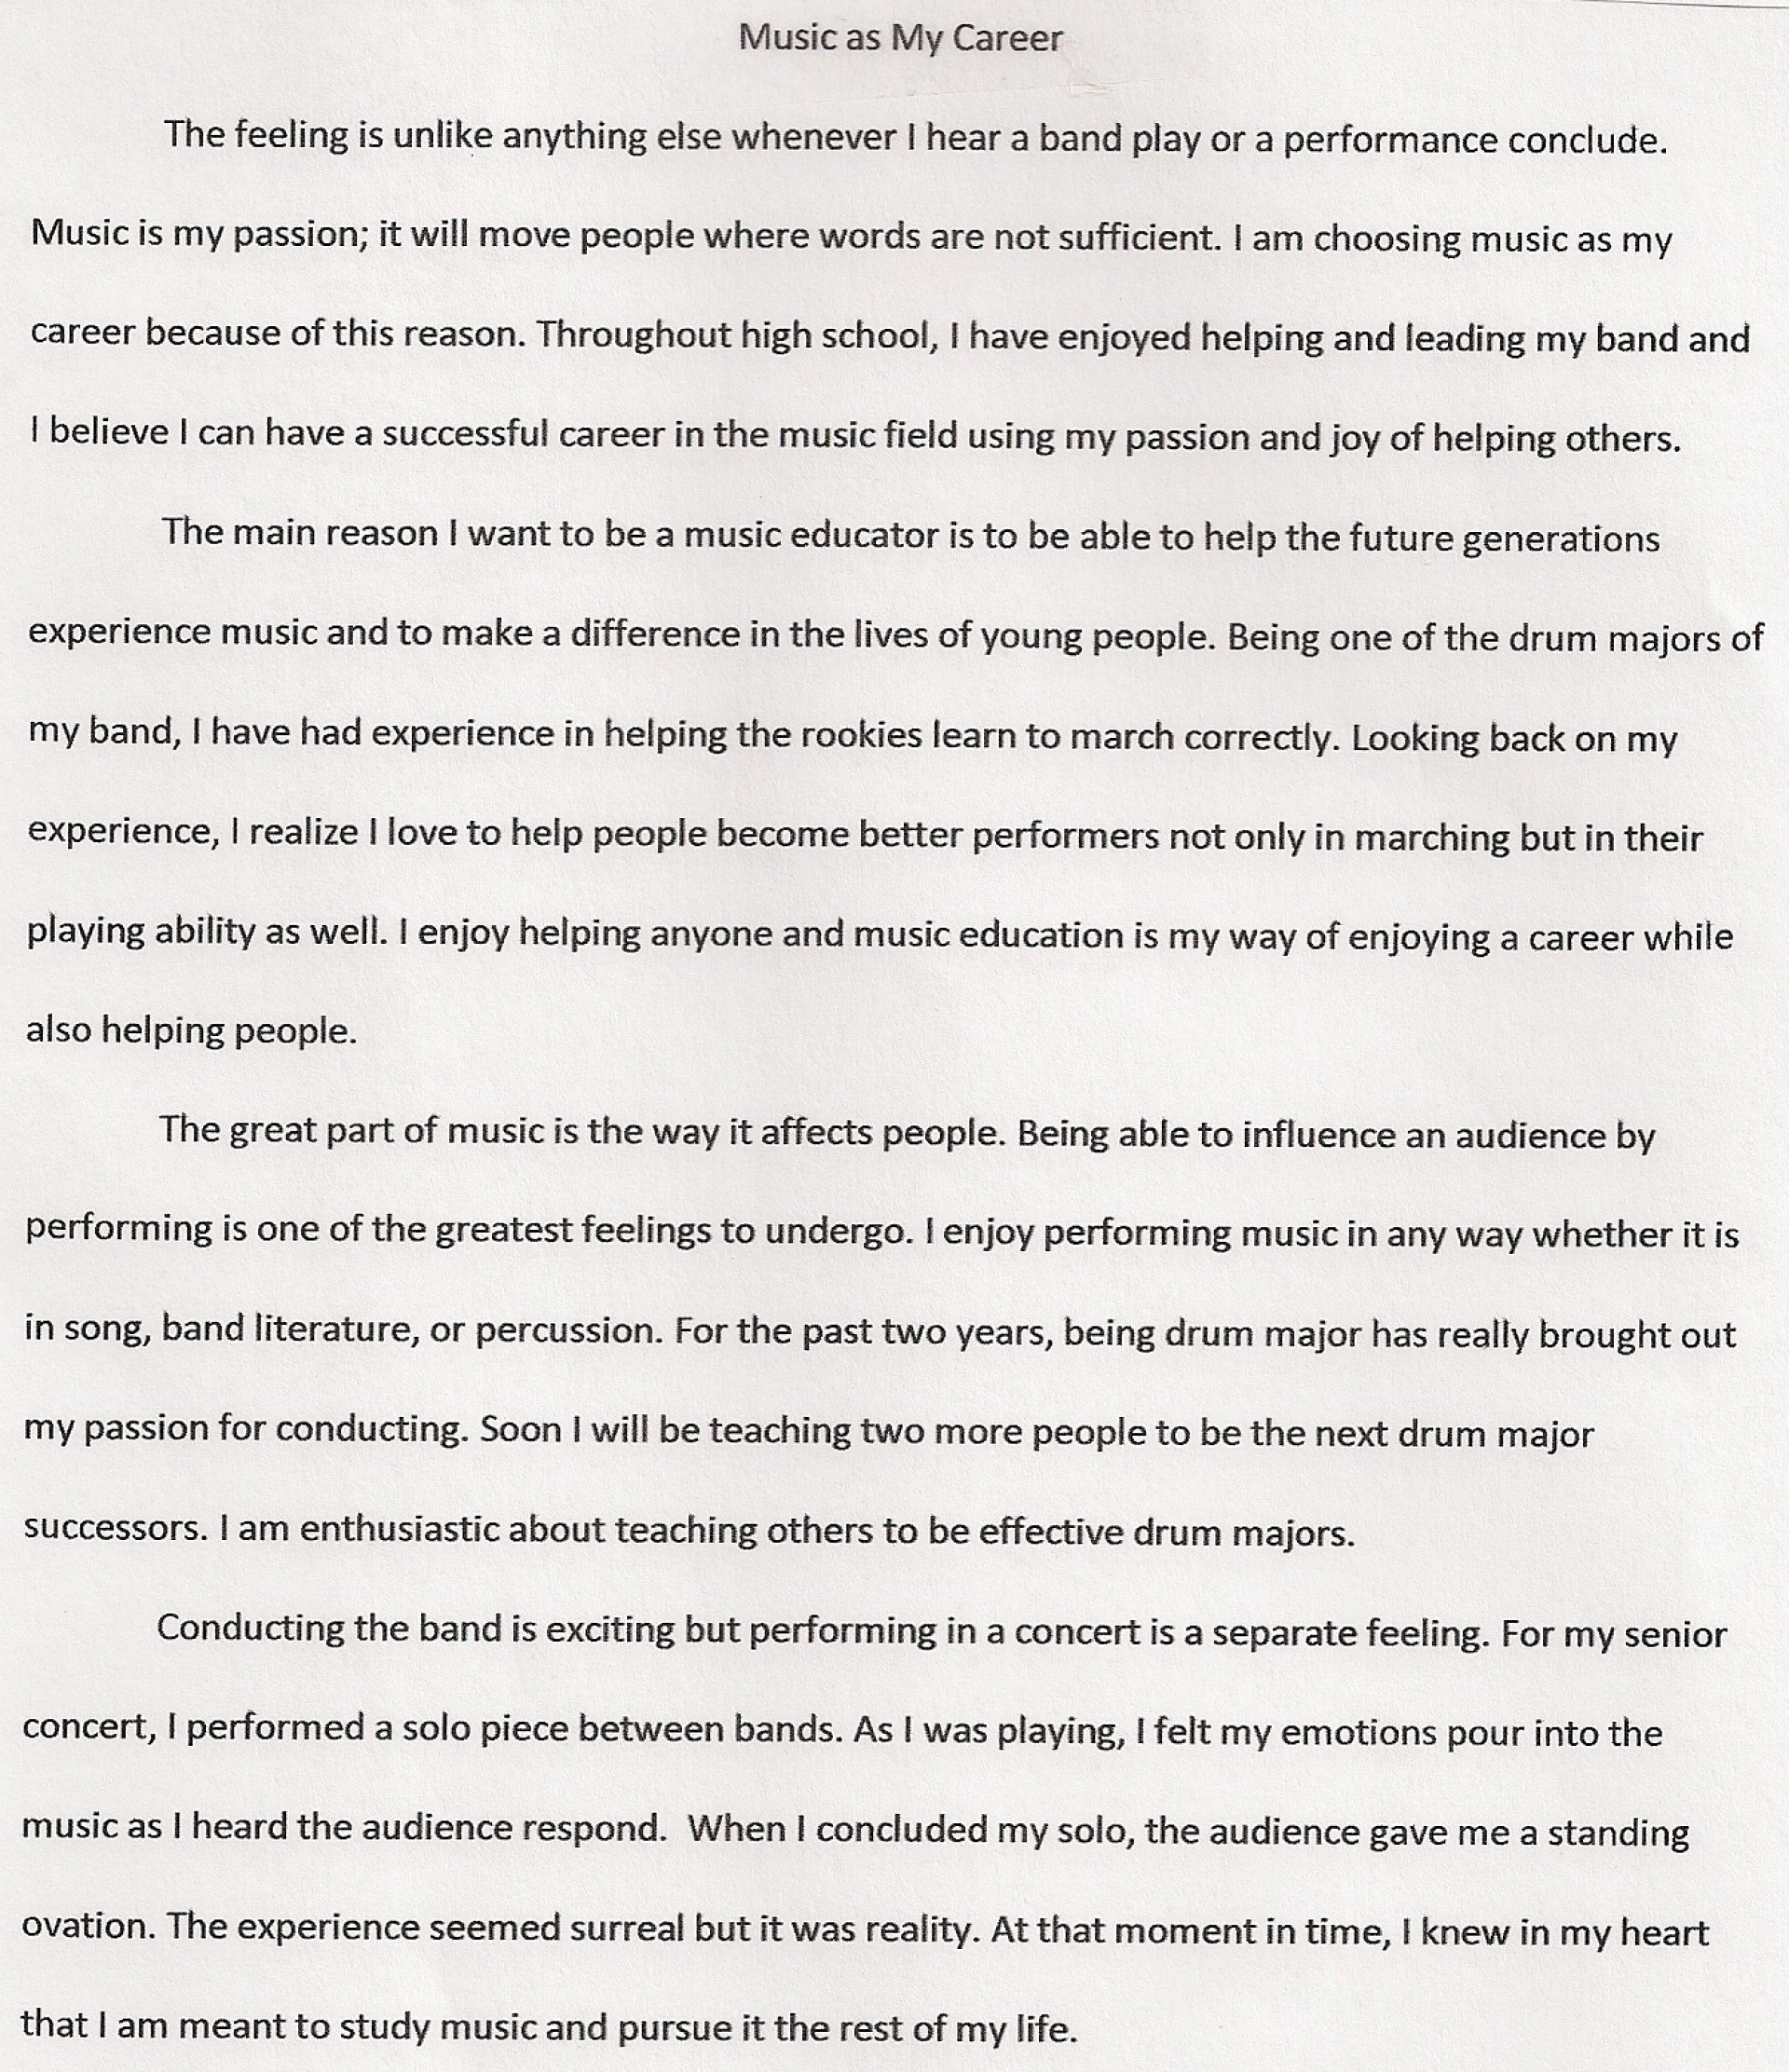 020 Graduation Essay Example Excellent Sample High School Essays For 8th Grade 1920